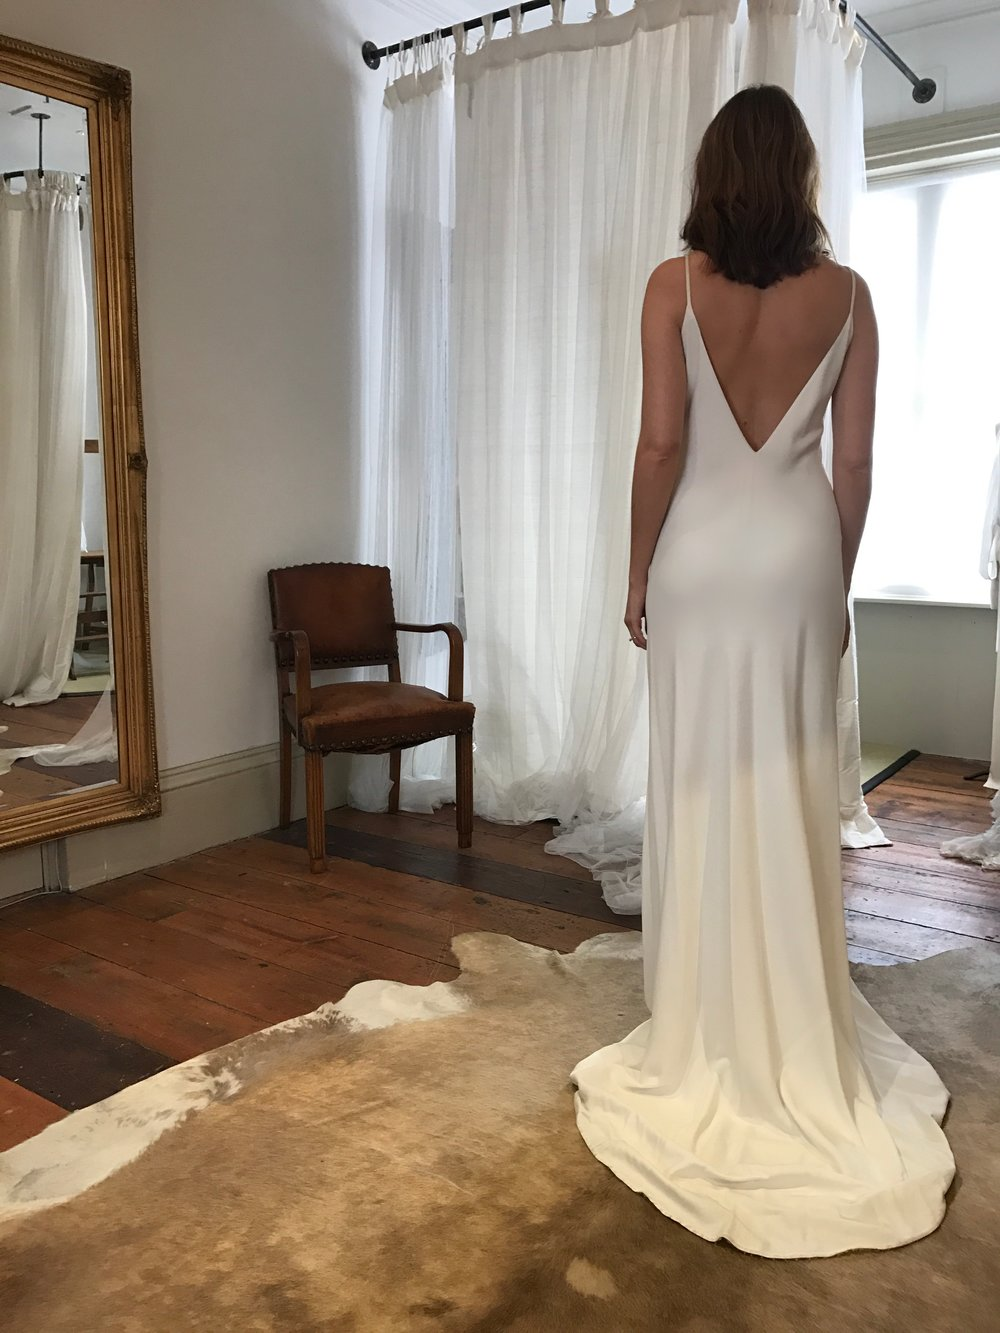 THE GROWN UP EDIT - Discounted Designer Bridal Boutique